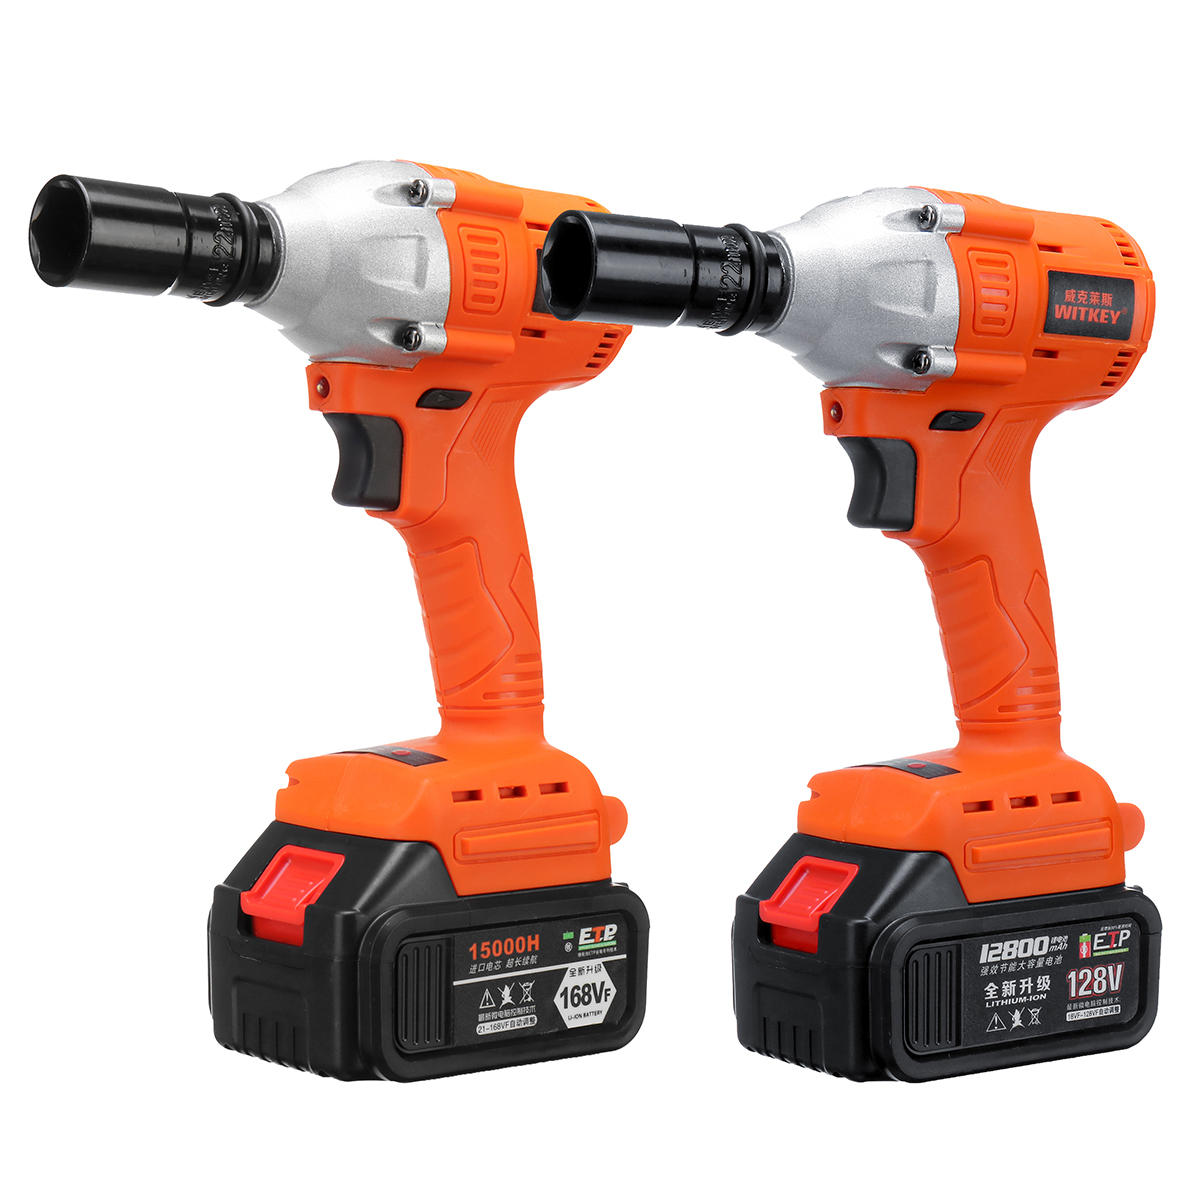 128vf 168vf Brushless Cordless Impact Wrench Socket Led Light Electric Tool Cod